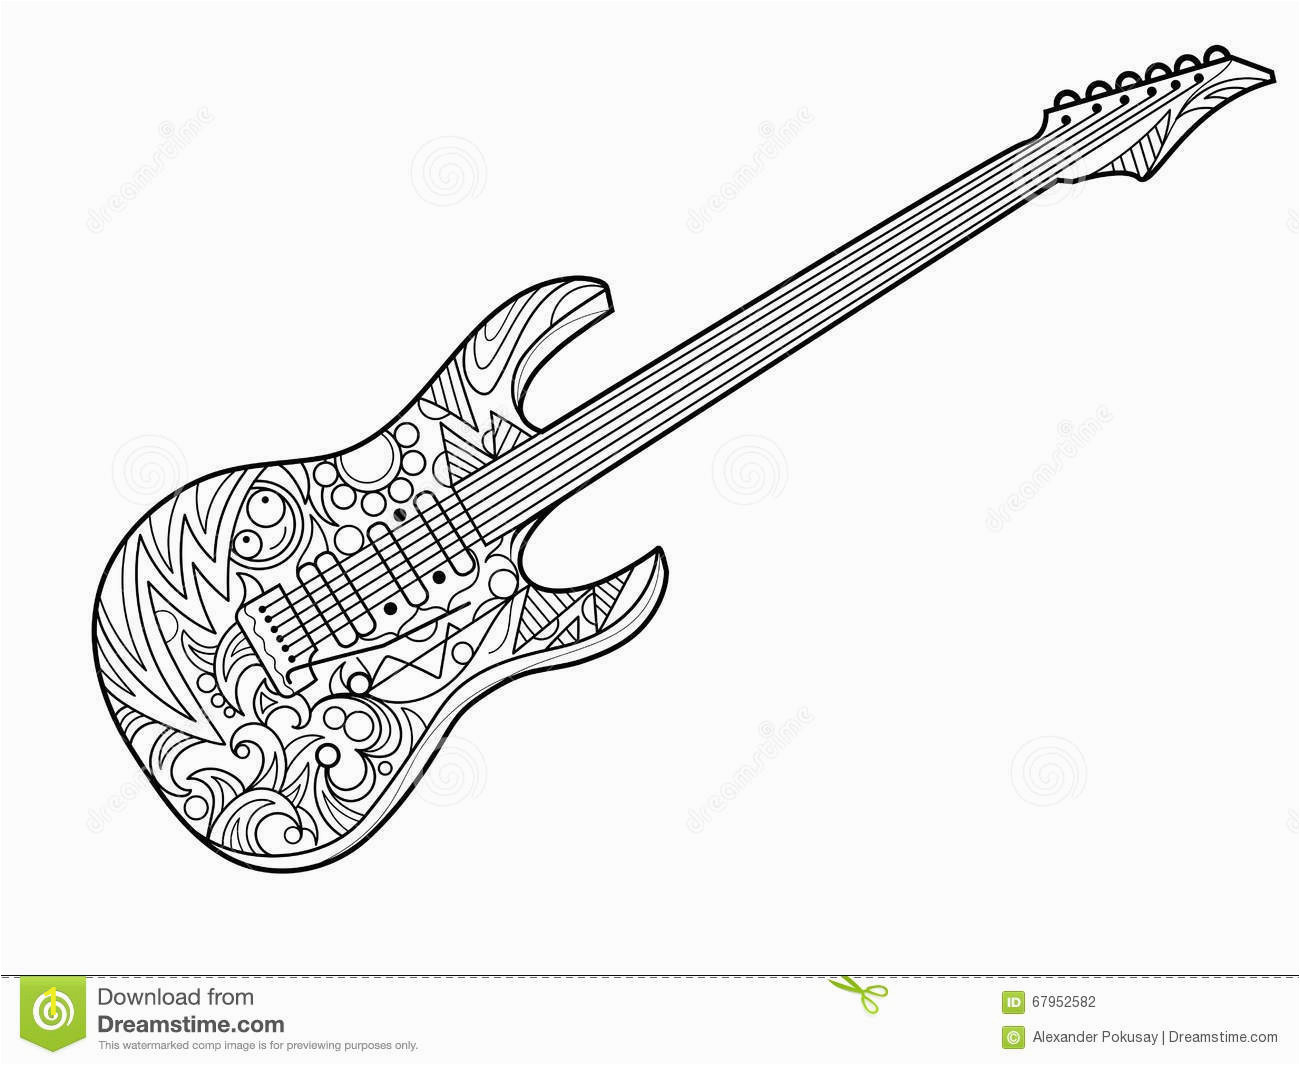 Electric Guitar Coloring Page Electric Guitar Coloring Book for Adults Vector Stock Vector